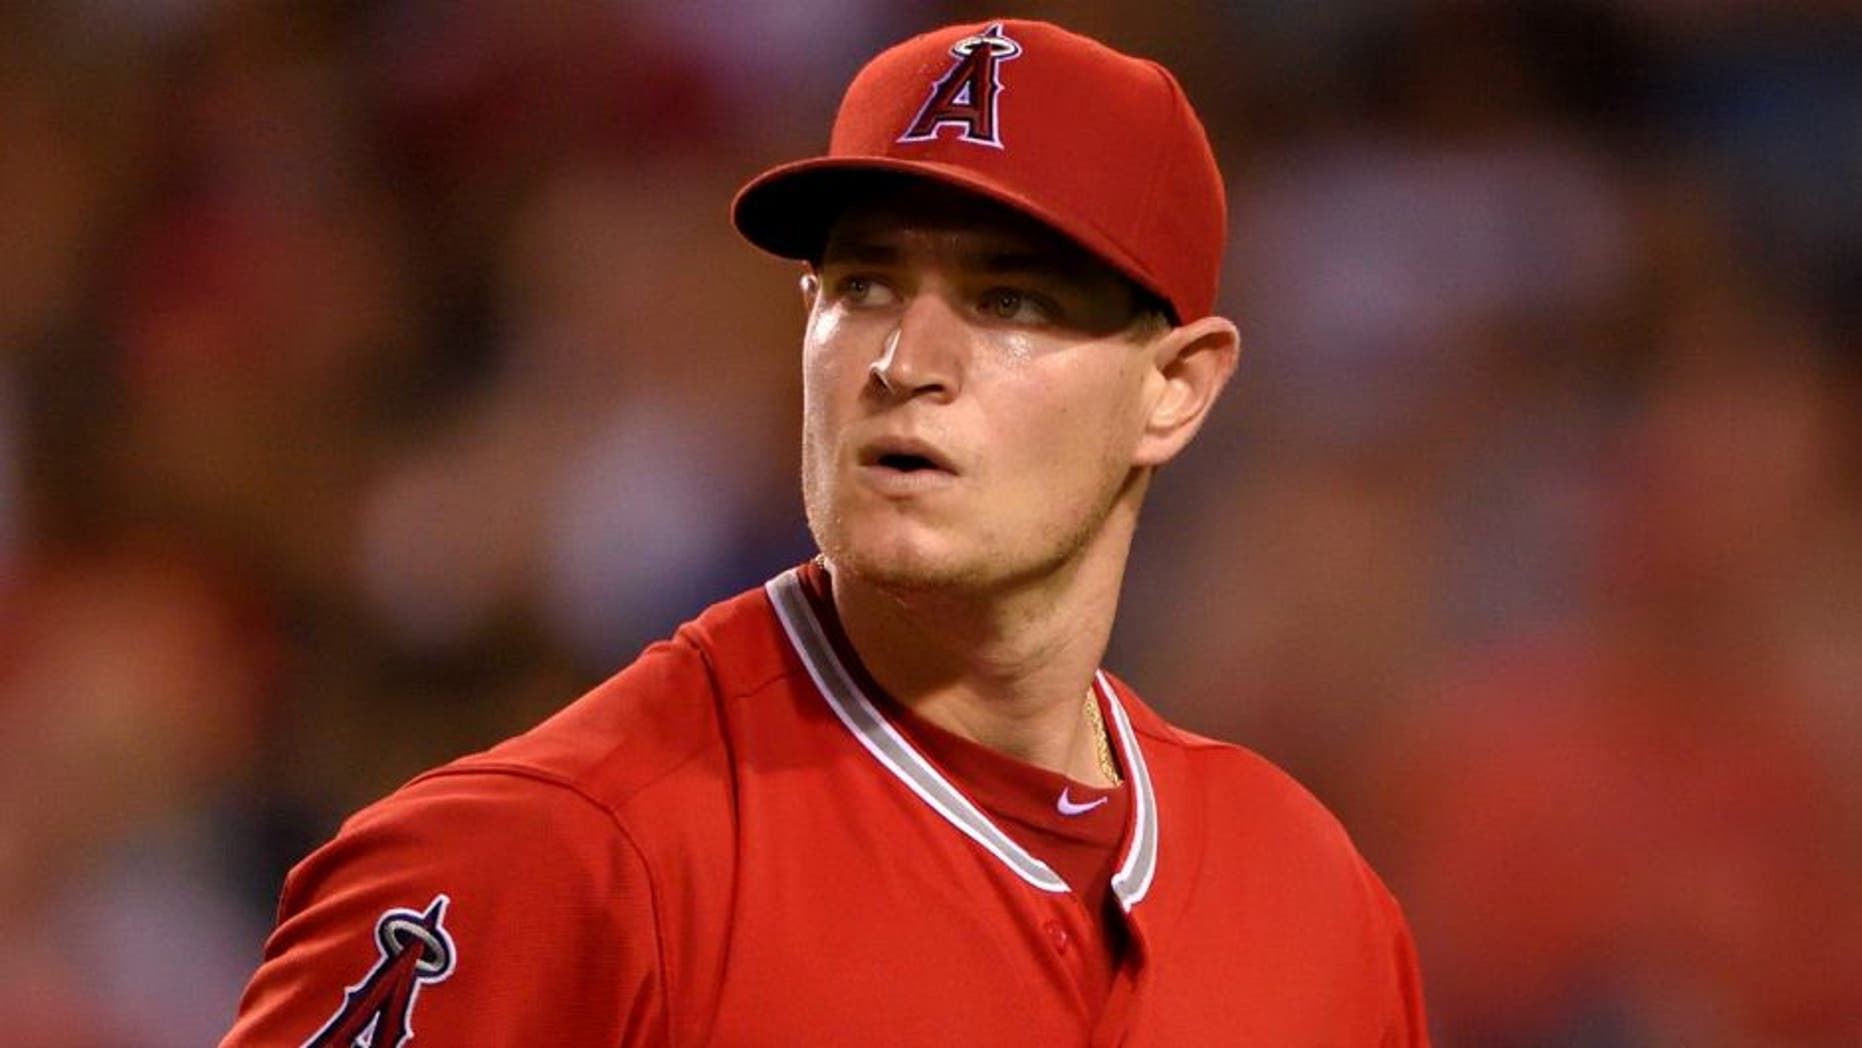 ANAHEIM, CA - SEPTEMBER 25: Garrett Richards #43 of the Los Angeles Angels of Anaheim reacts during the sixth inning of the game against the Seattle Mariners at Angel Stadium of Anaheim on September 25, 2015 in Anaheim, California. (Photo by Matt Brown/Angels Baseball LP/Getty Images)